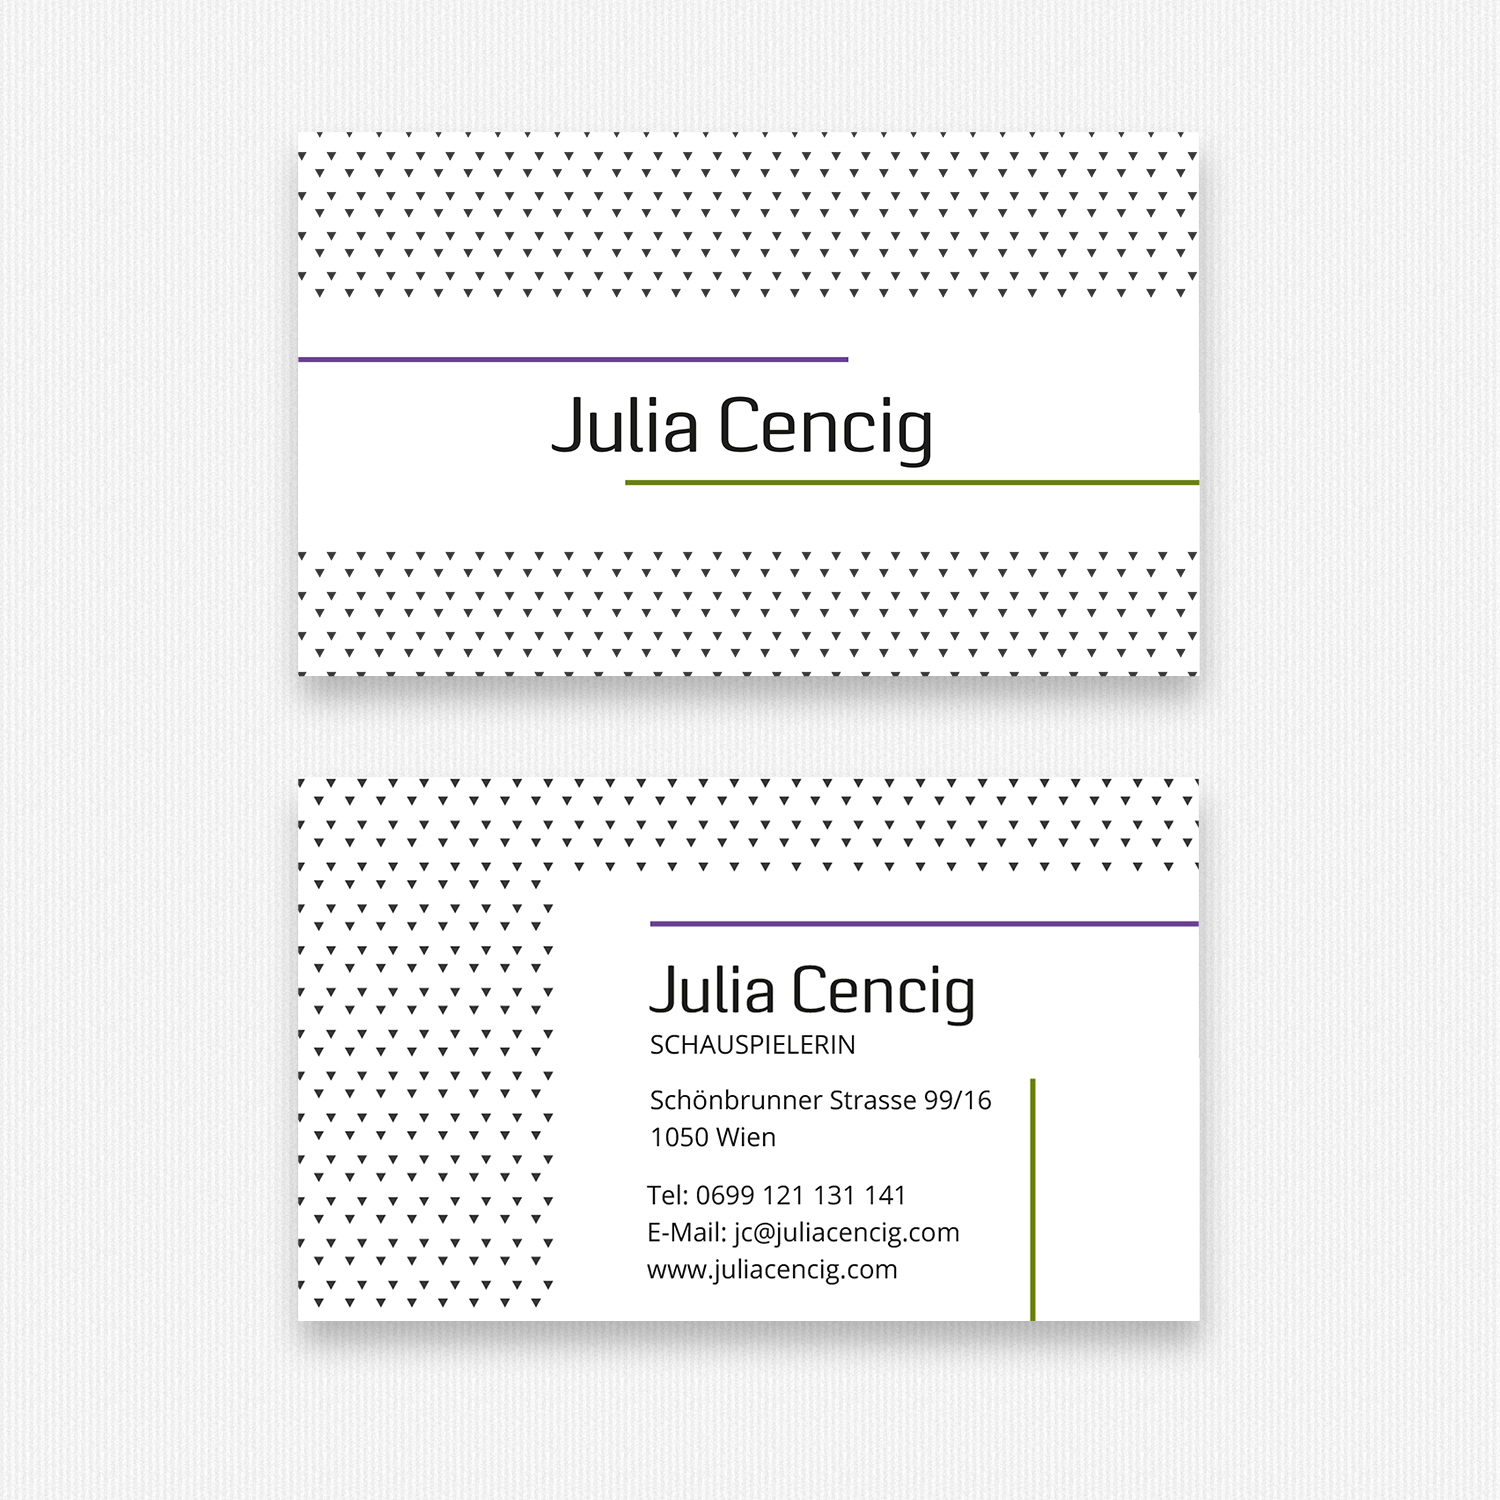 Julia Cencig - Business Cards